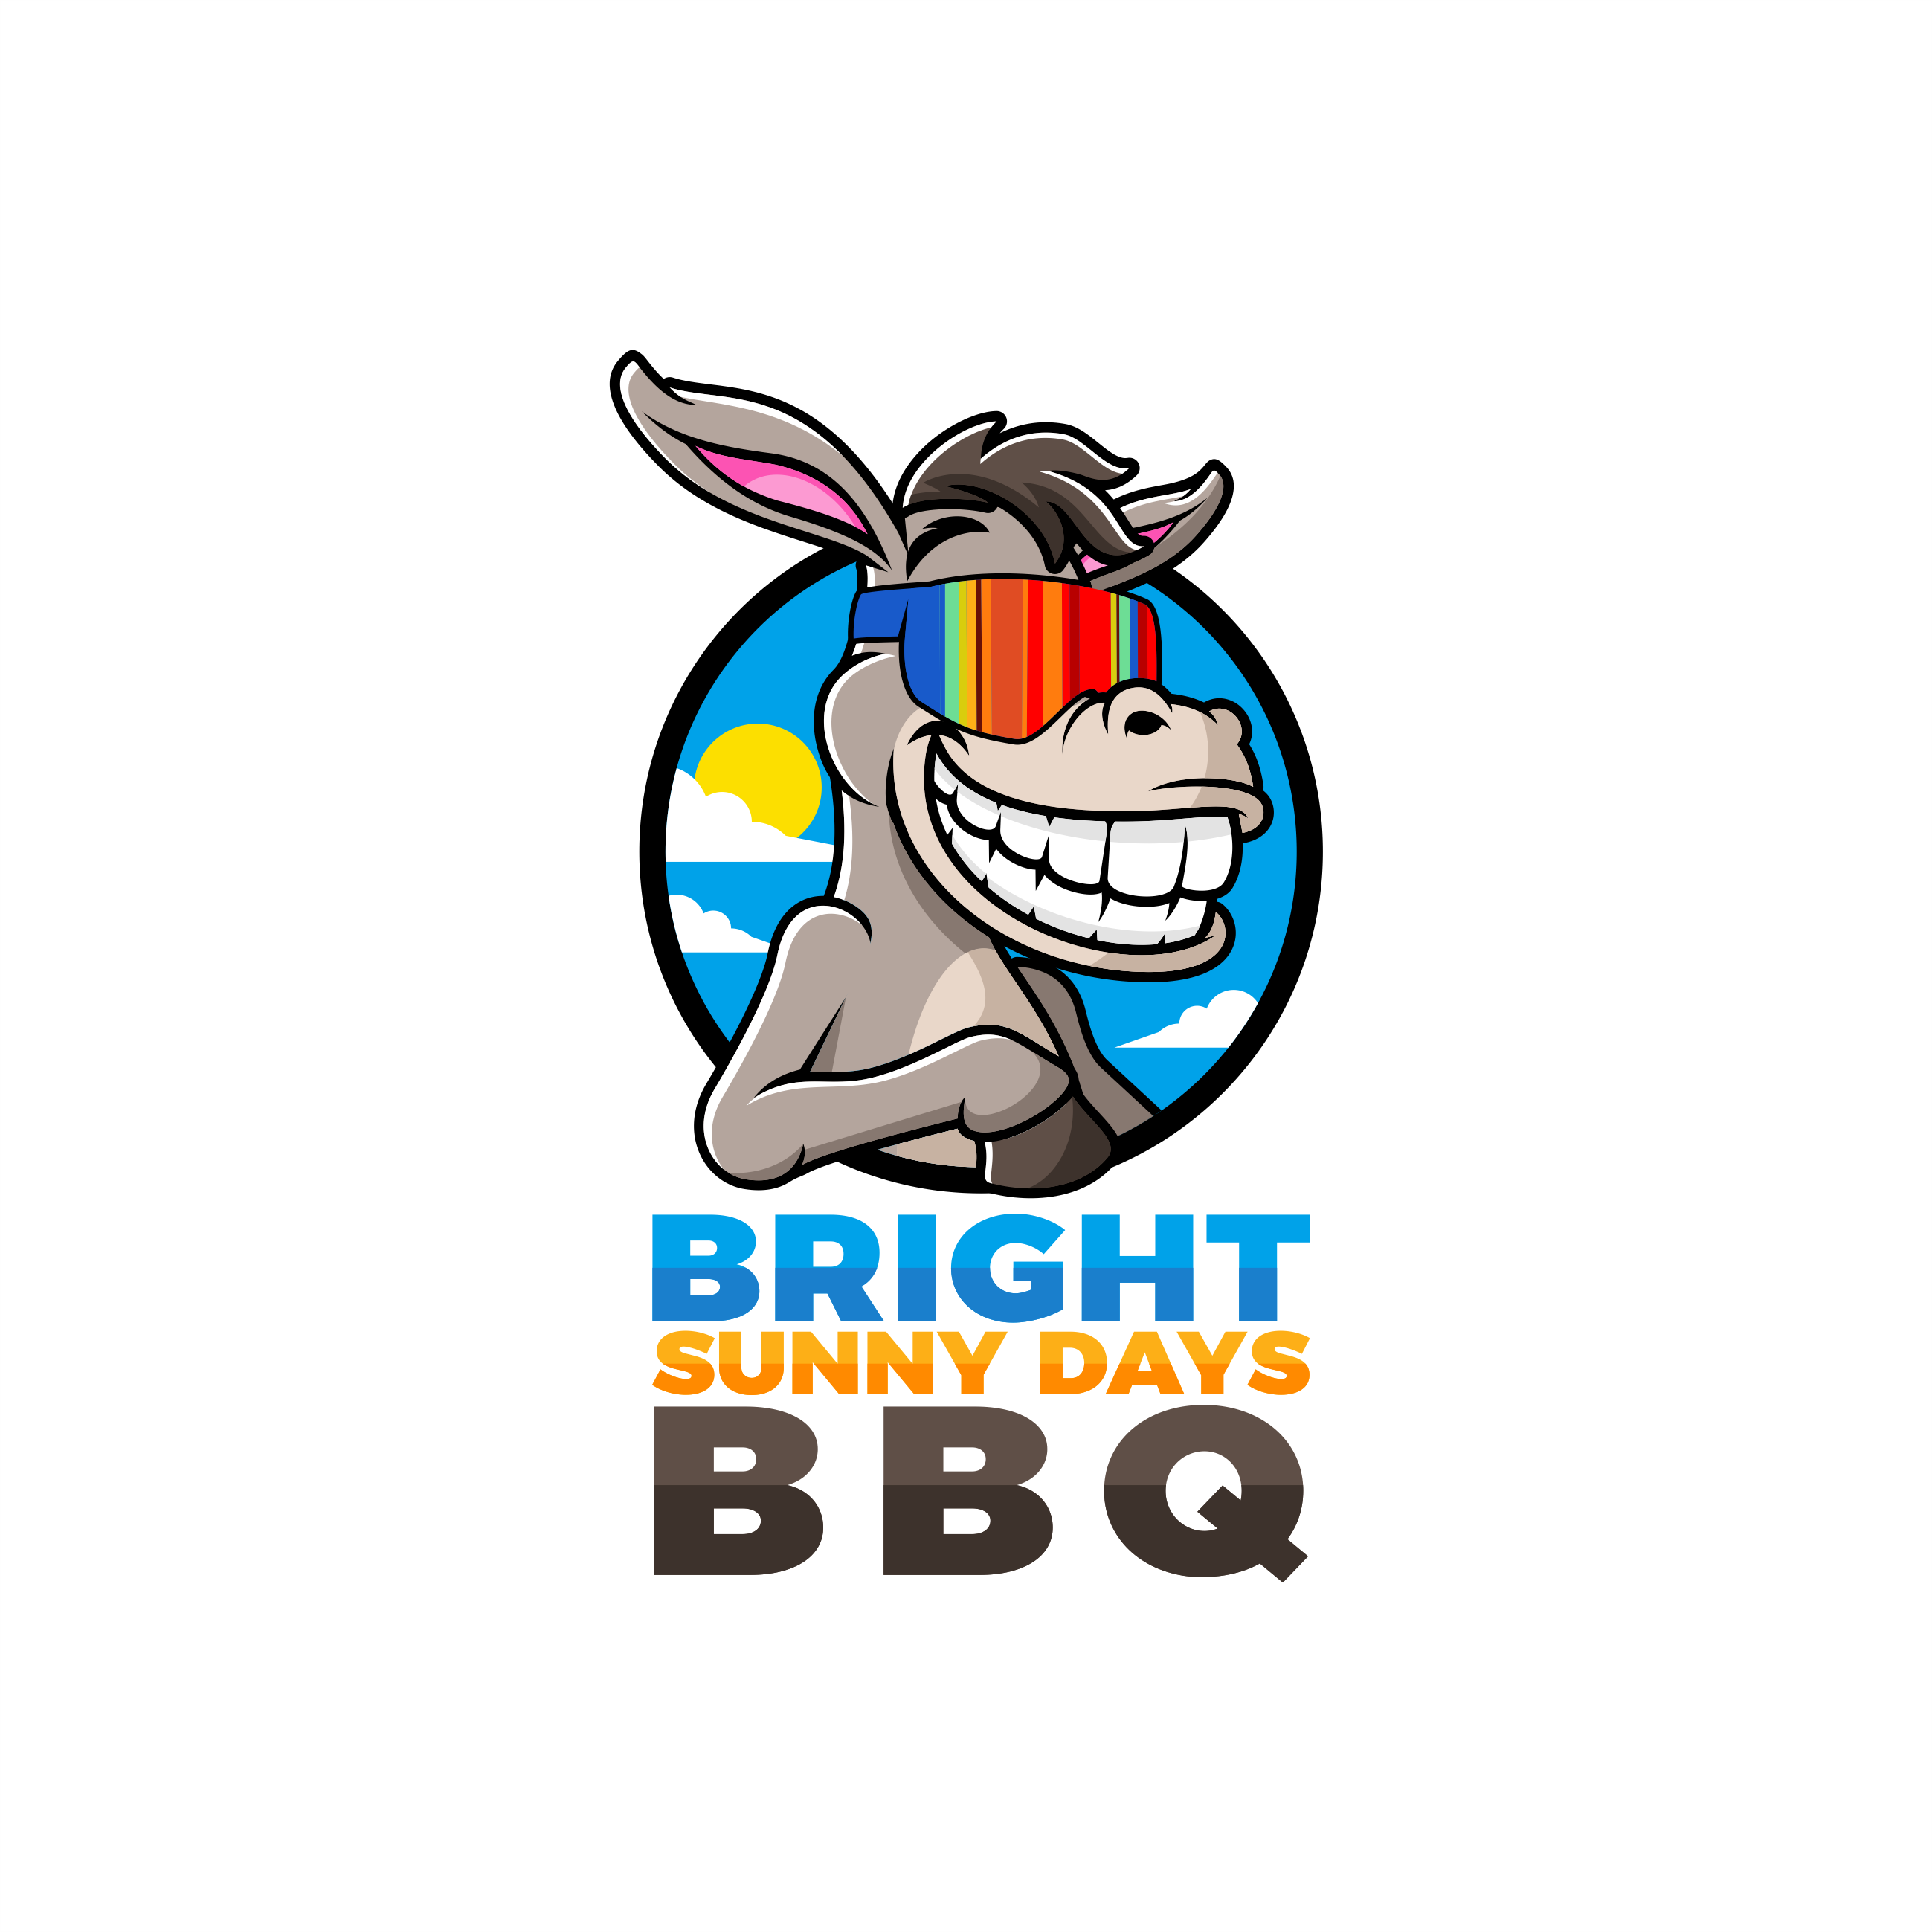 Bright Sunny Days BBQ - We're a bunch of jackasses that love BBQ